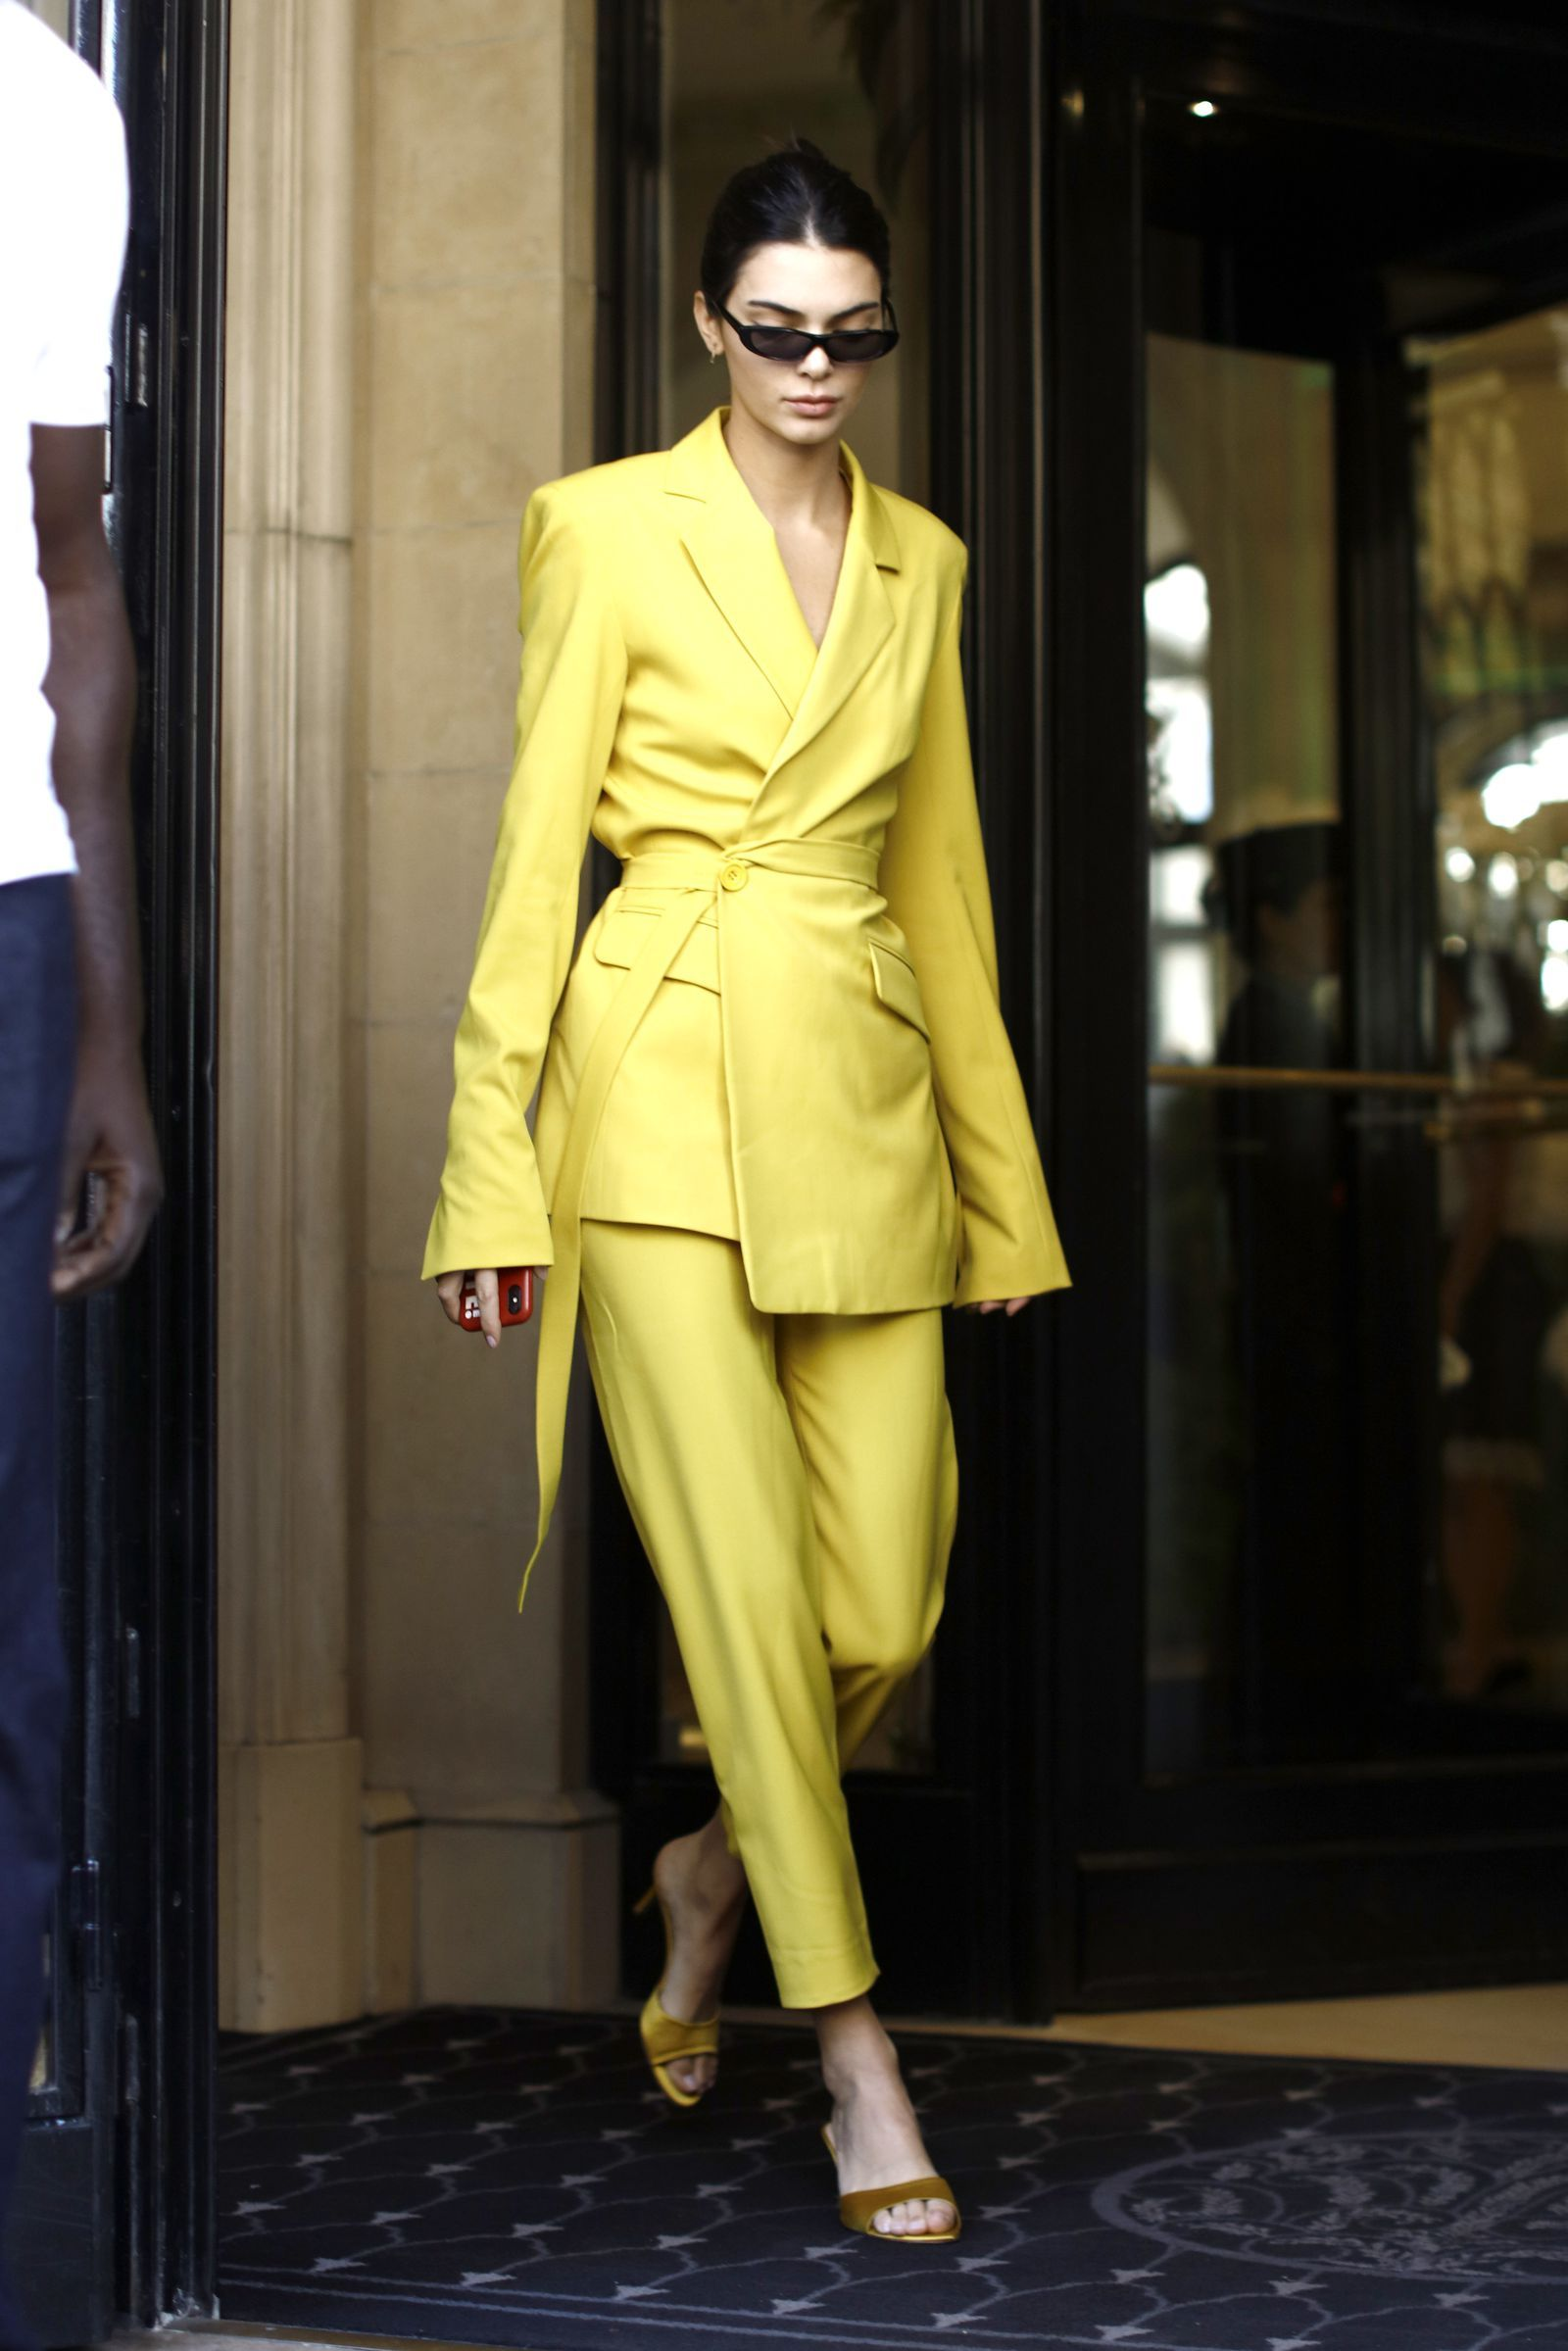 Photo of Kendall Jenner Heads To Burberry Fitting Wearing 'Matrix'-Inspired Outfit At LFW